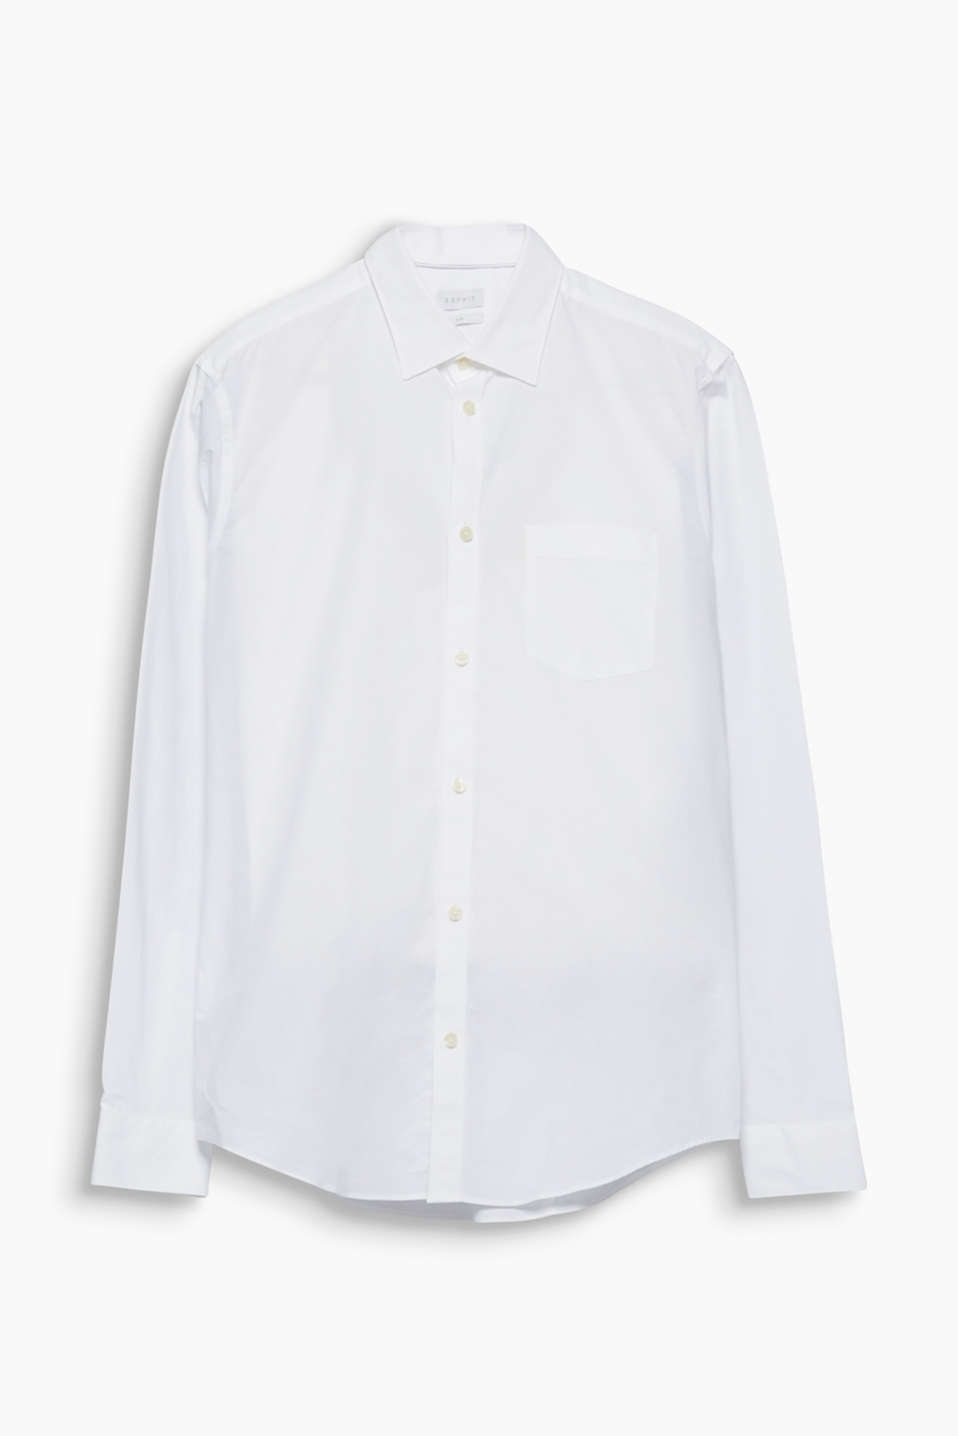 Suit up! The timeless design and the easy-iron cotton fil à fil fabric make this shirt a highlight.